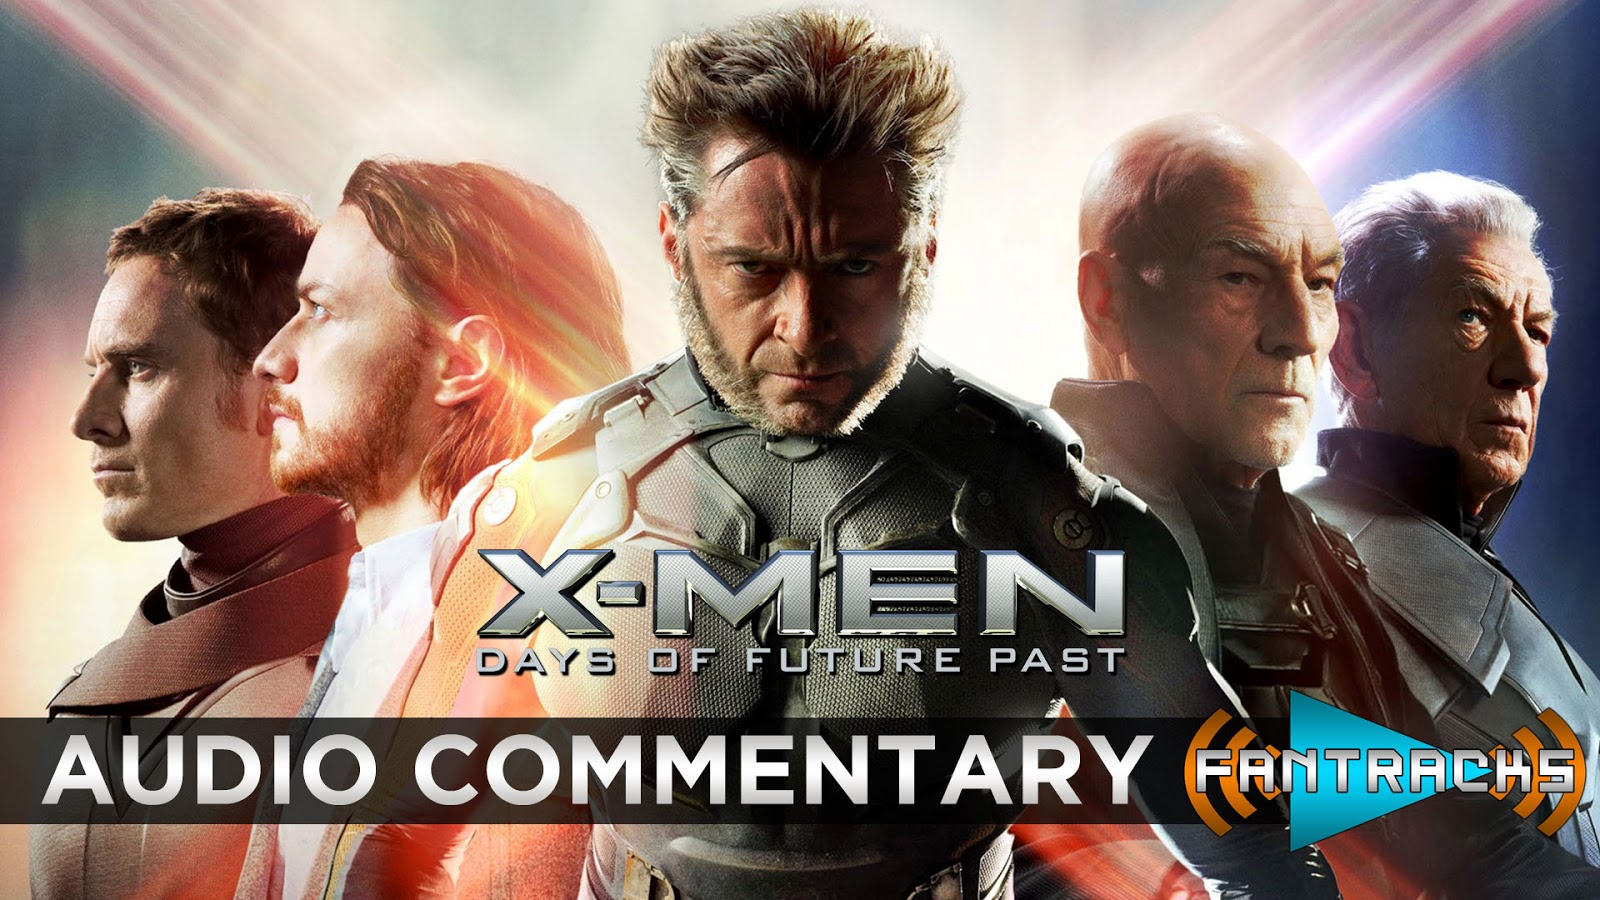 FanTracks X-Men: Days of Future Past (Rogue Cut) audio commentary